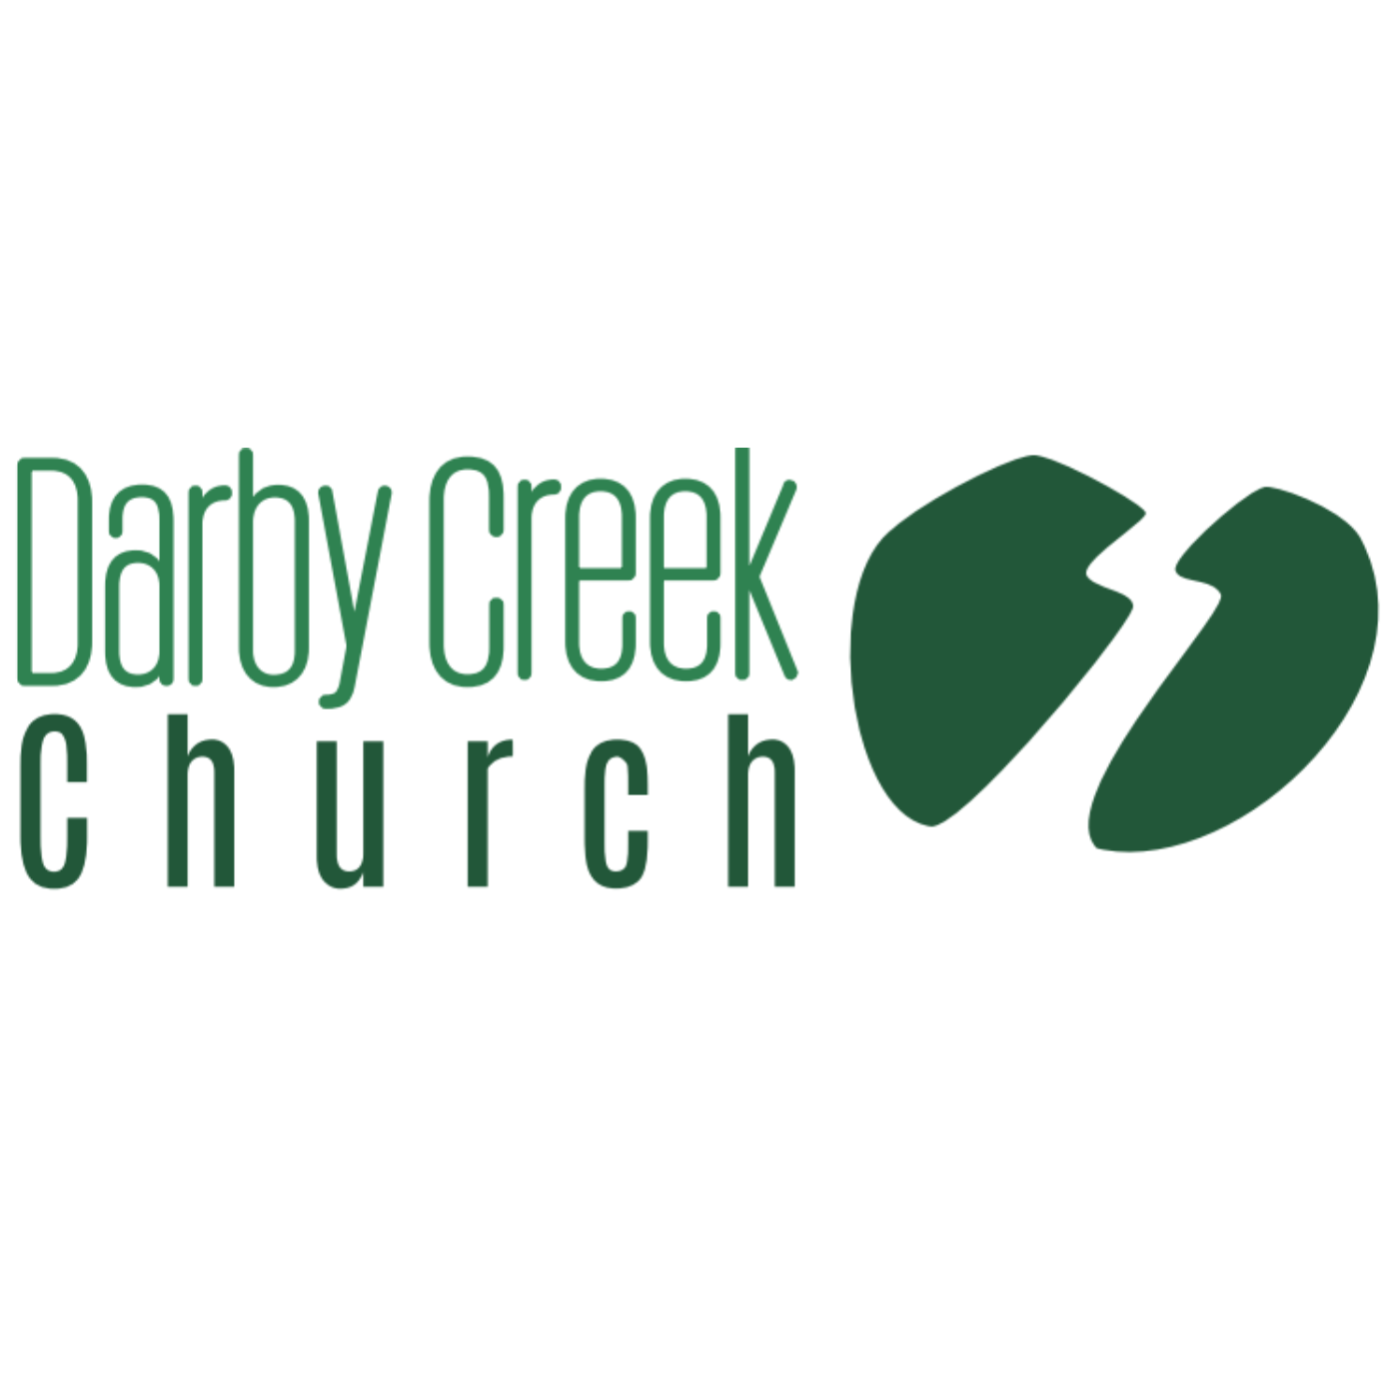 Darby Creek Church Sermons